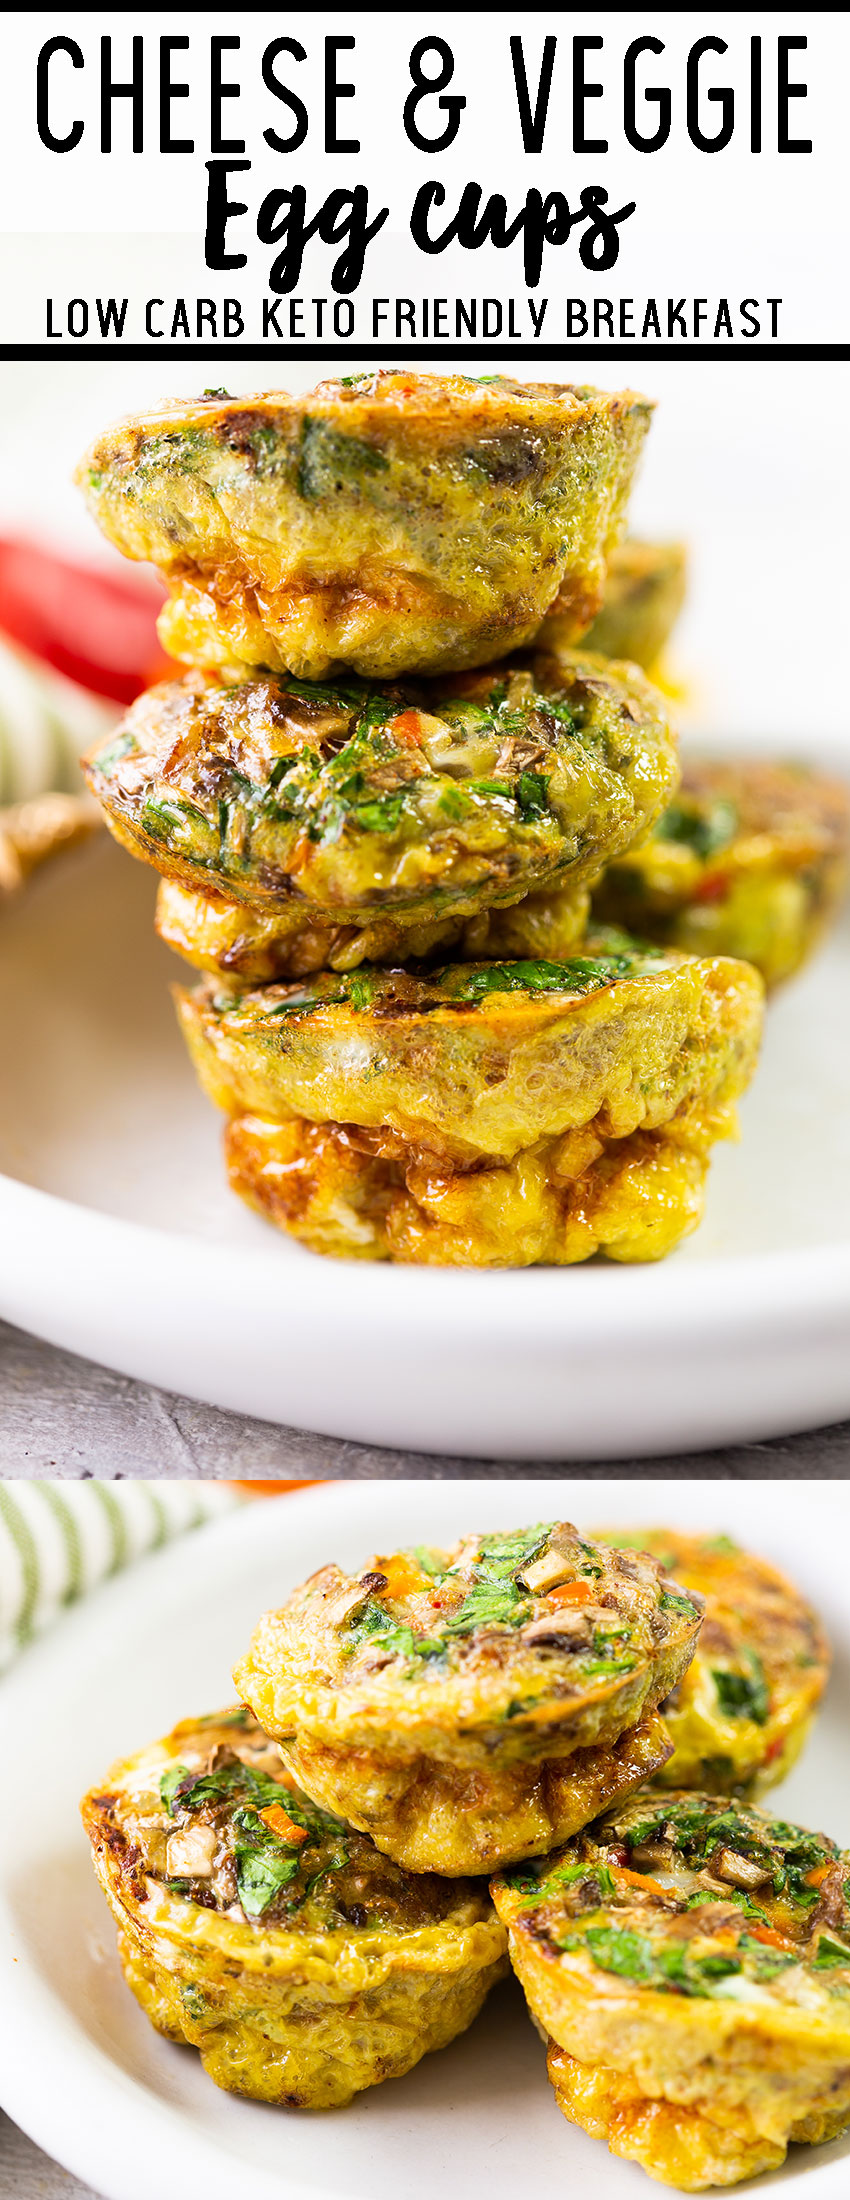 Cheese and veggie egg cups